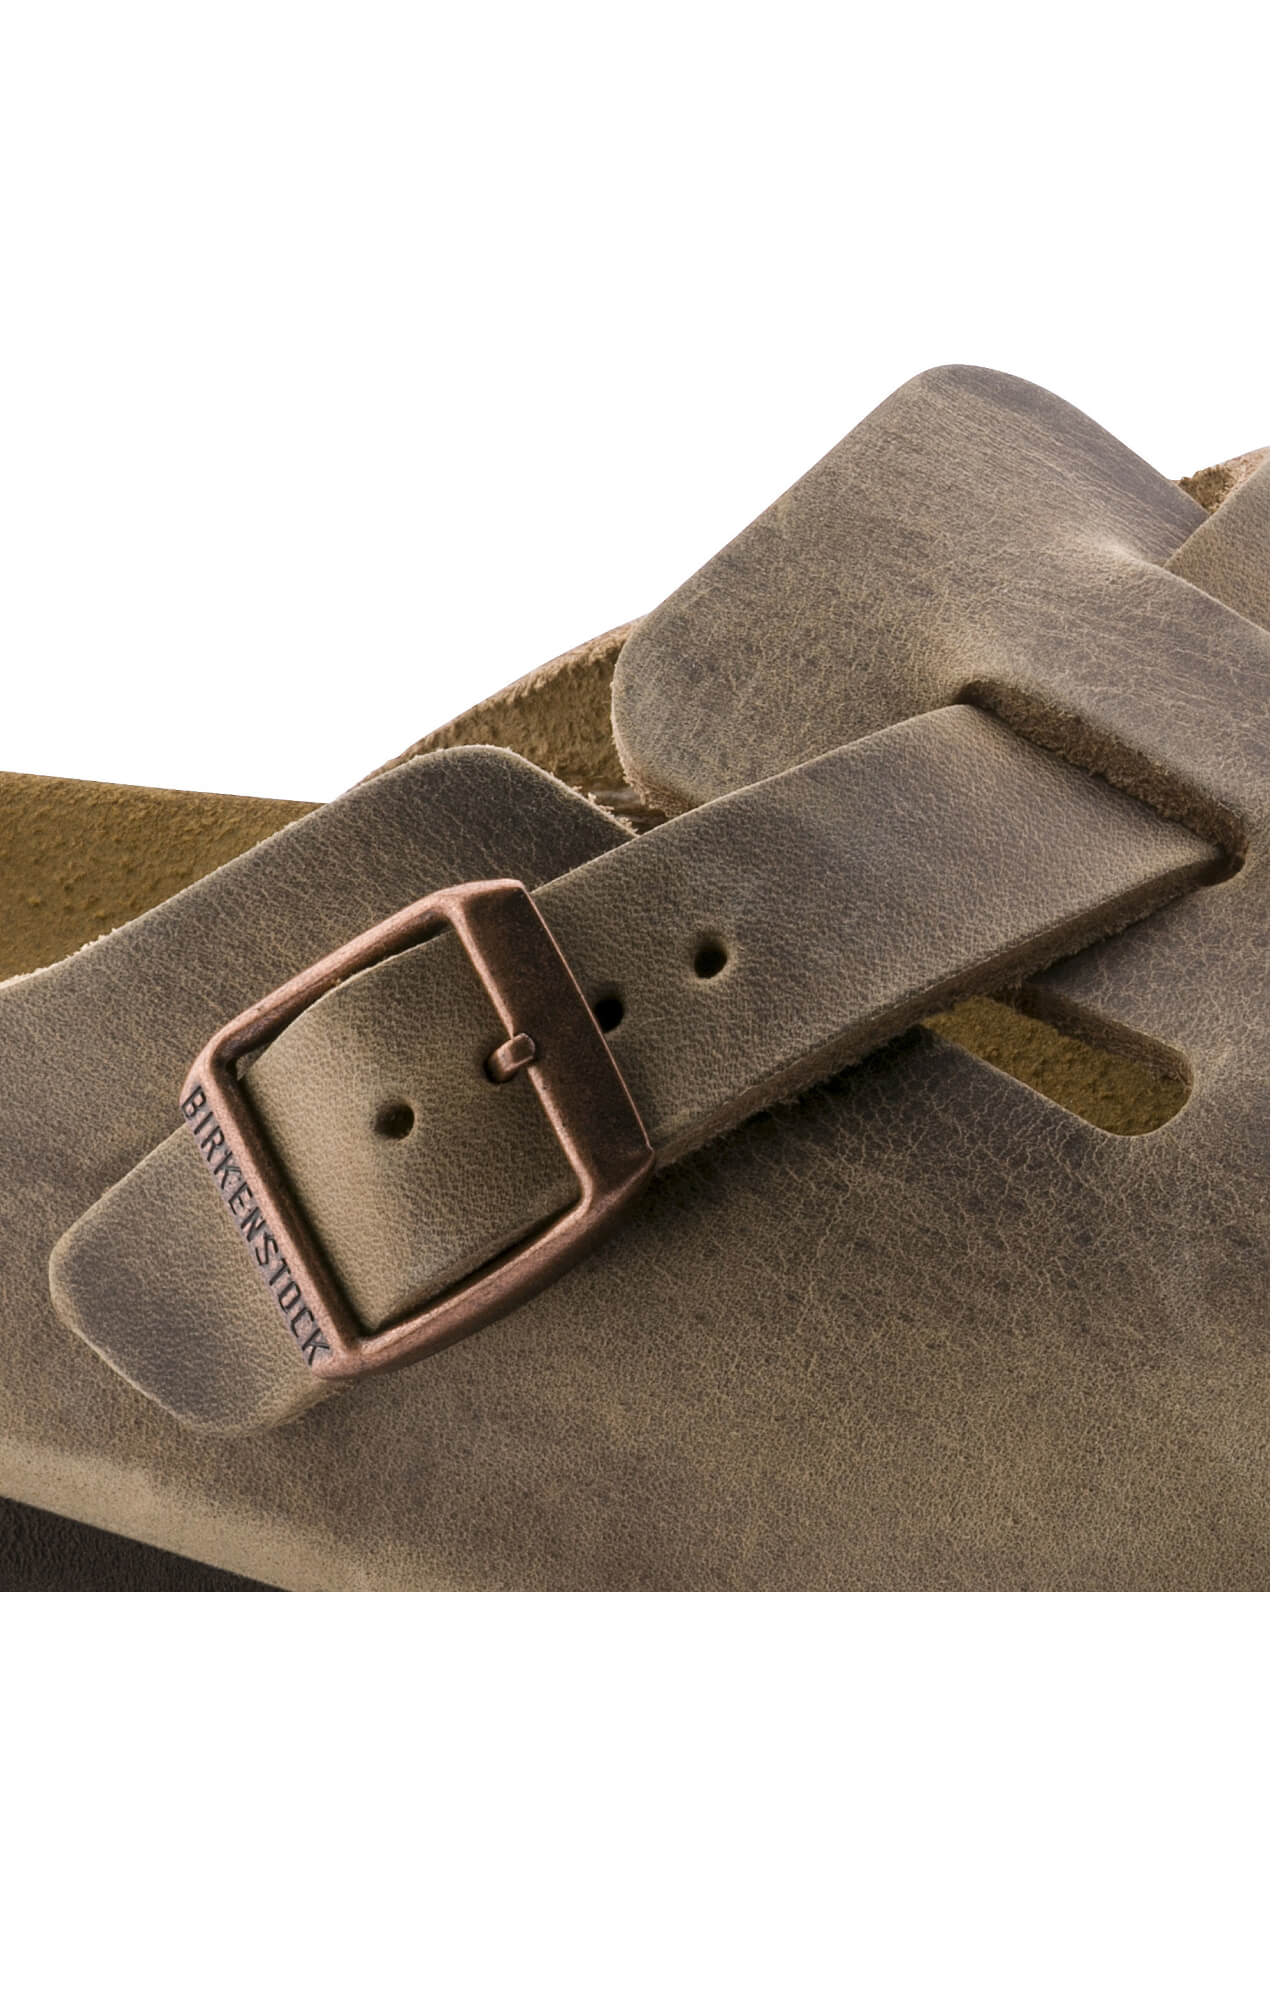 BIRKENSTOCK BOSTON OILED LEATHER TOBACCO | ENHANCE U